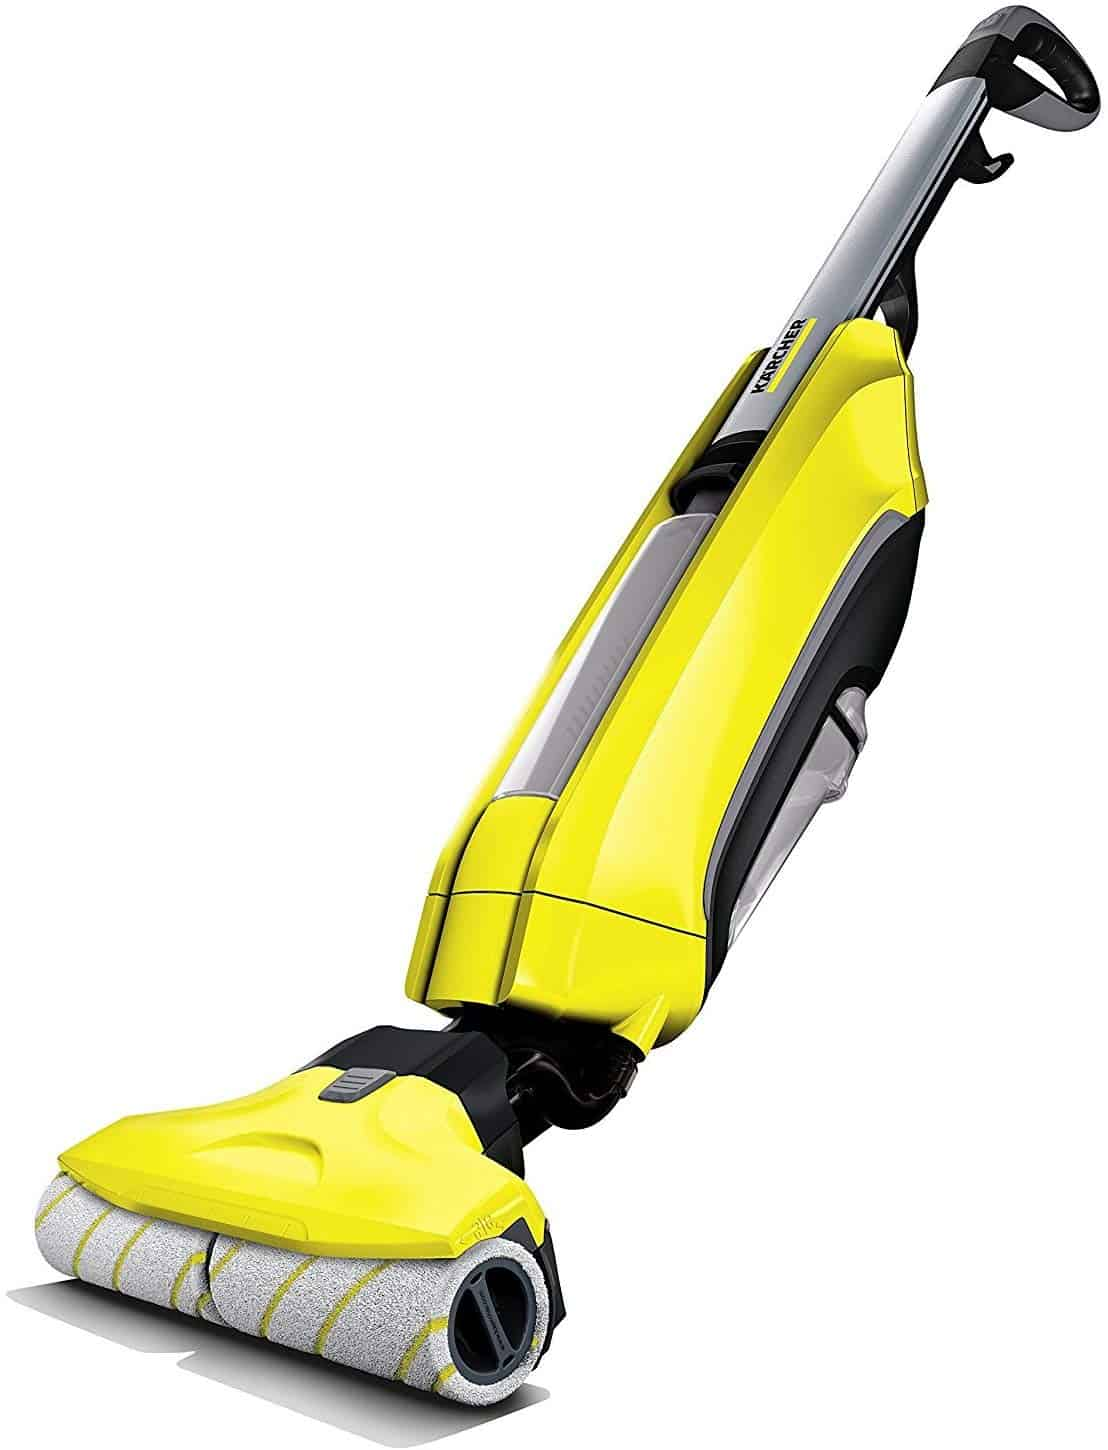 Karcher FC5 Review: The Hard Floor Cleaner